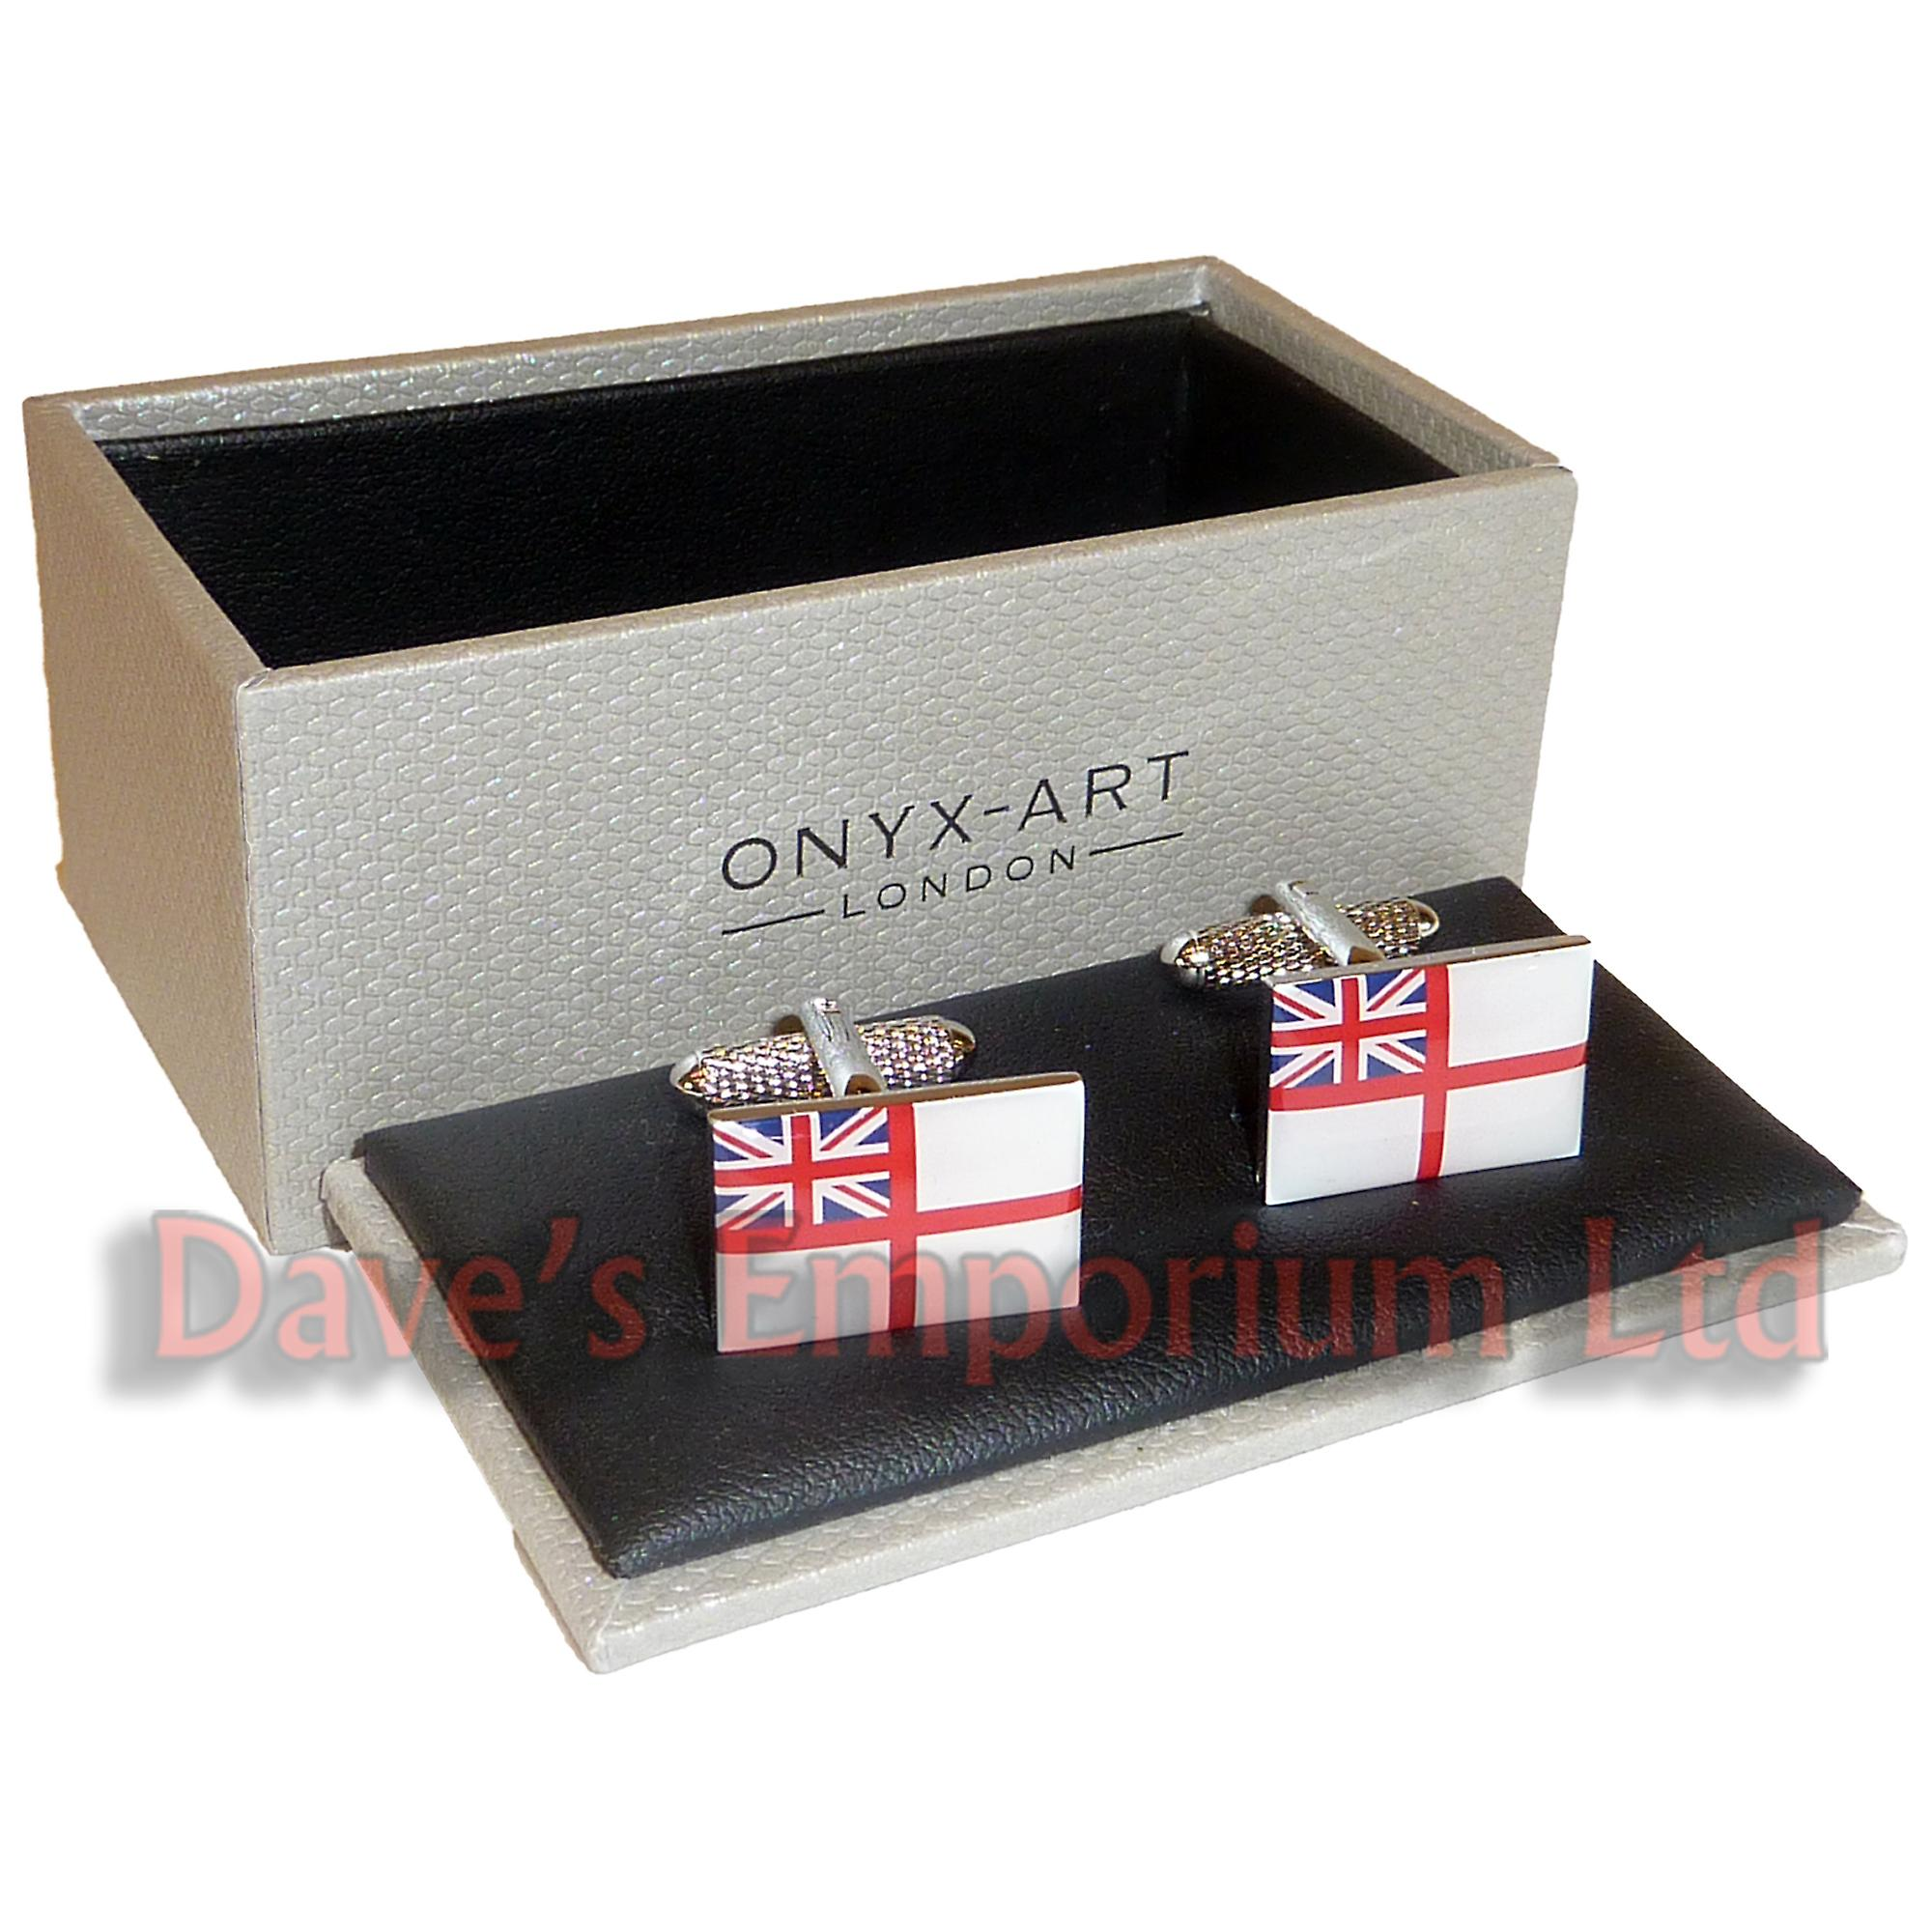 Royal Navy Ensign Cufflinks - Onyx Art - Gift Boxed - Union Jack Flag Cuff Links